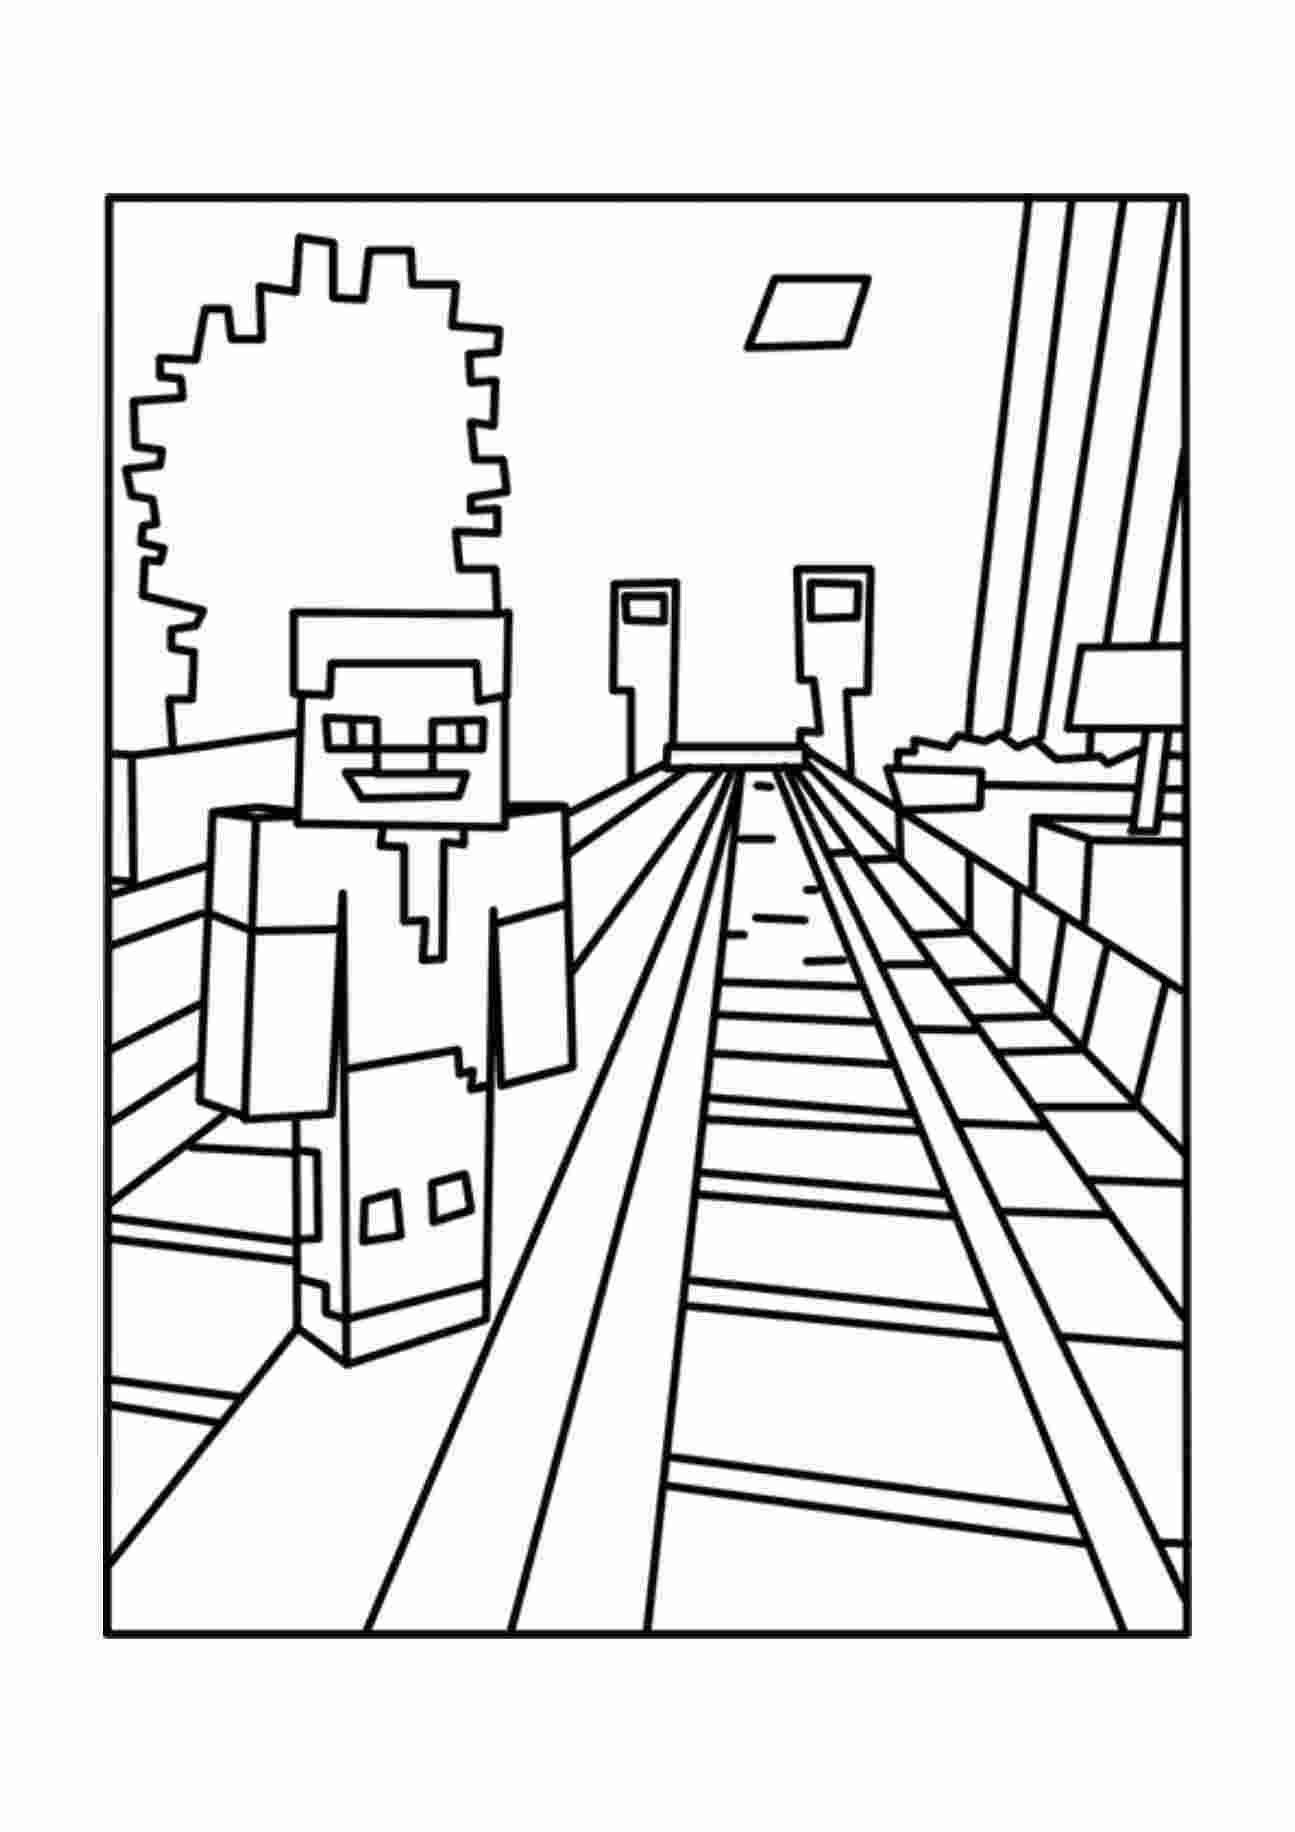 minecraft colouring pages minecraft skeleton coloring pages at getcoloringscom